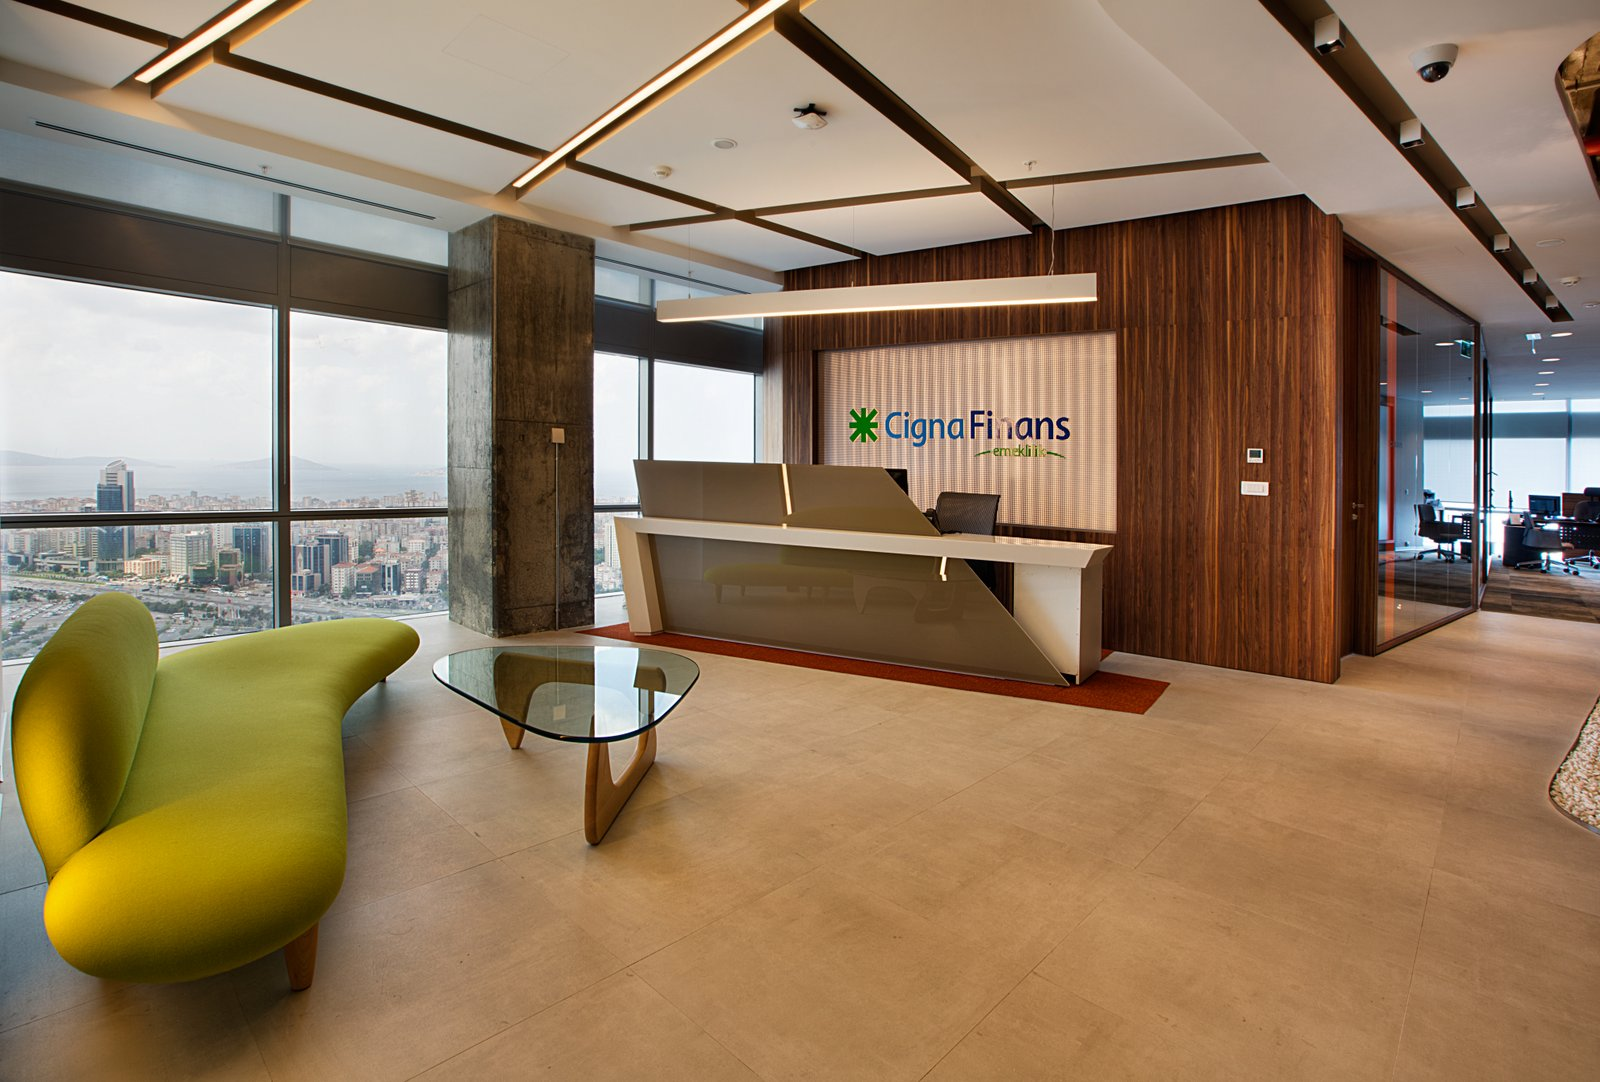 office lobby designs. Office Lobby Interior Design. Cigna Finance Design N Designs 2